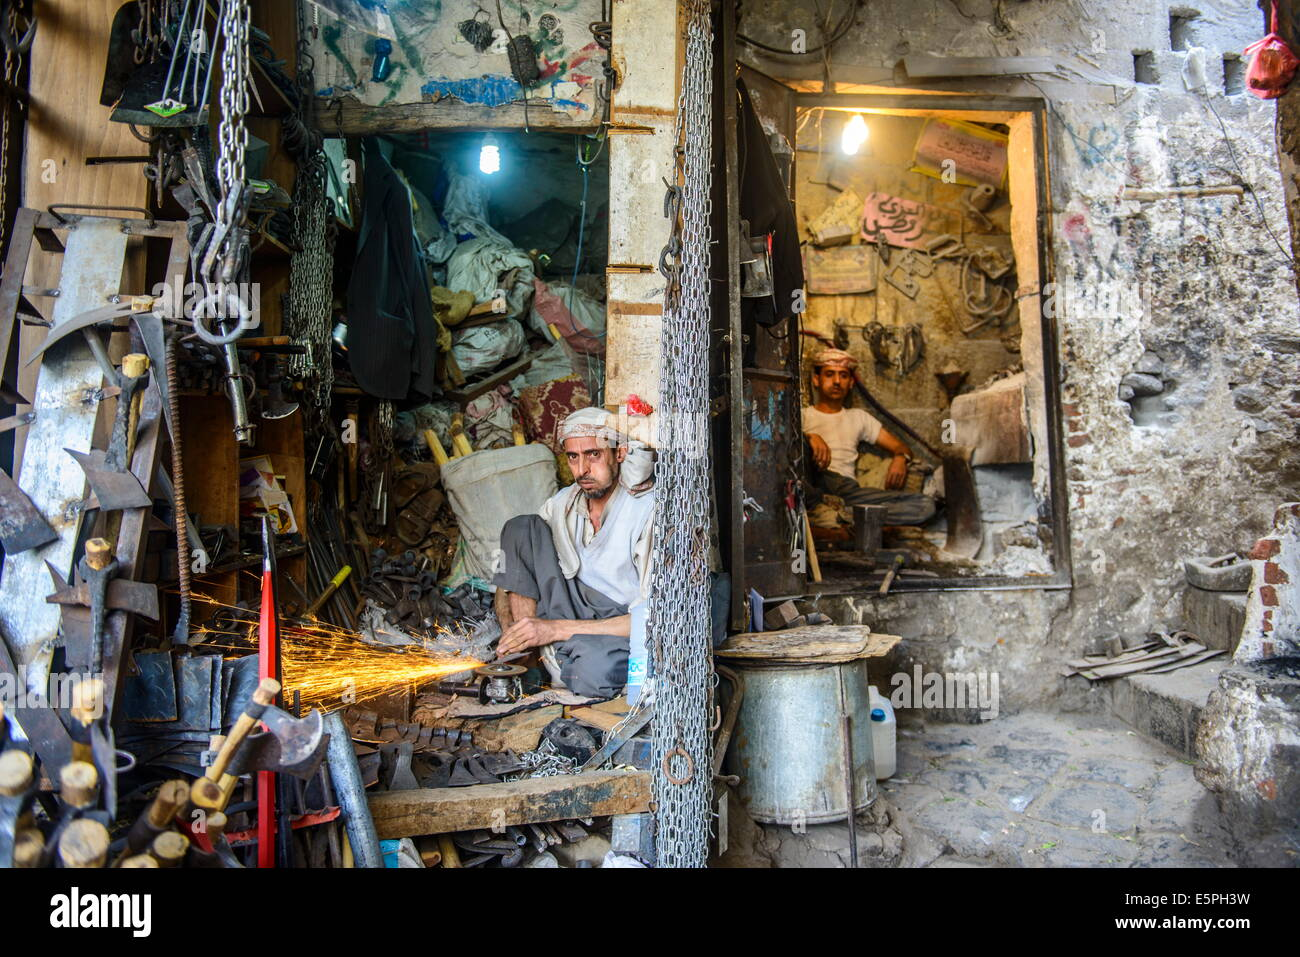 Small workplaces for smiths in the Old Town, UNESCO World Heritage Site, Sanaa, Yemen, Middle East - Stock Image